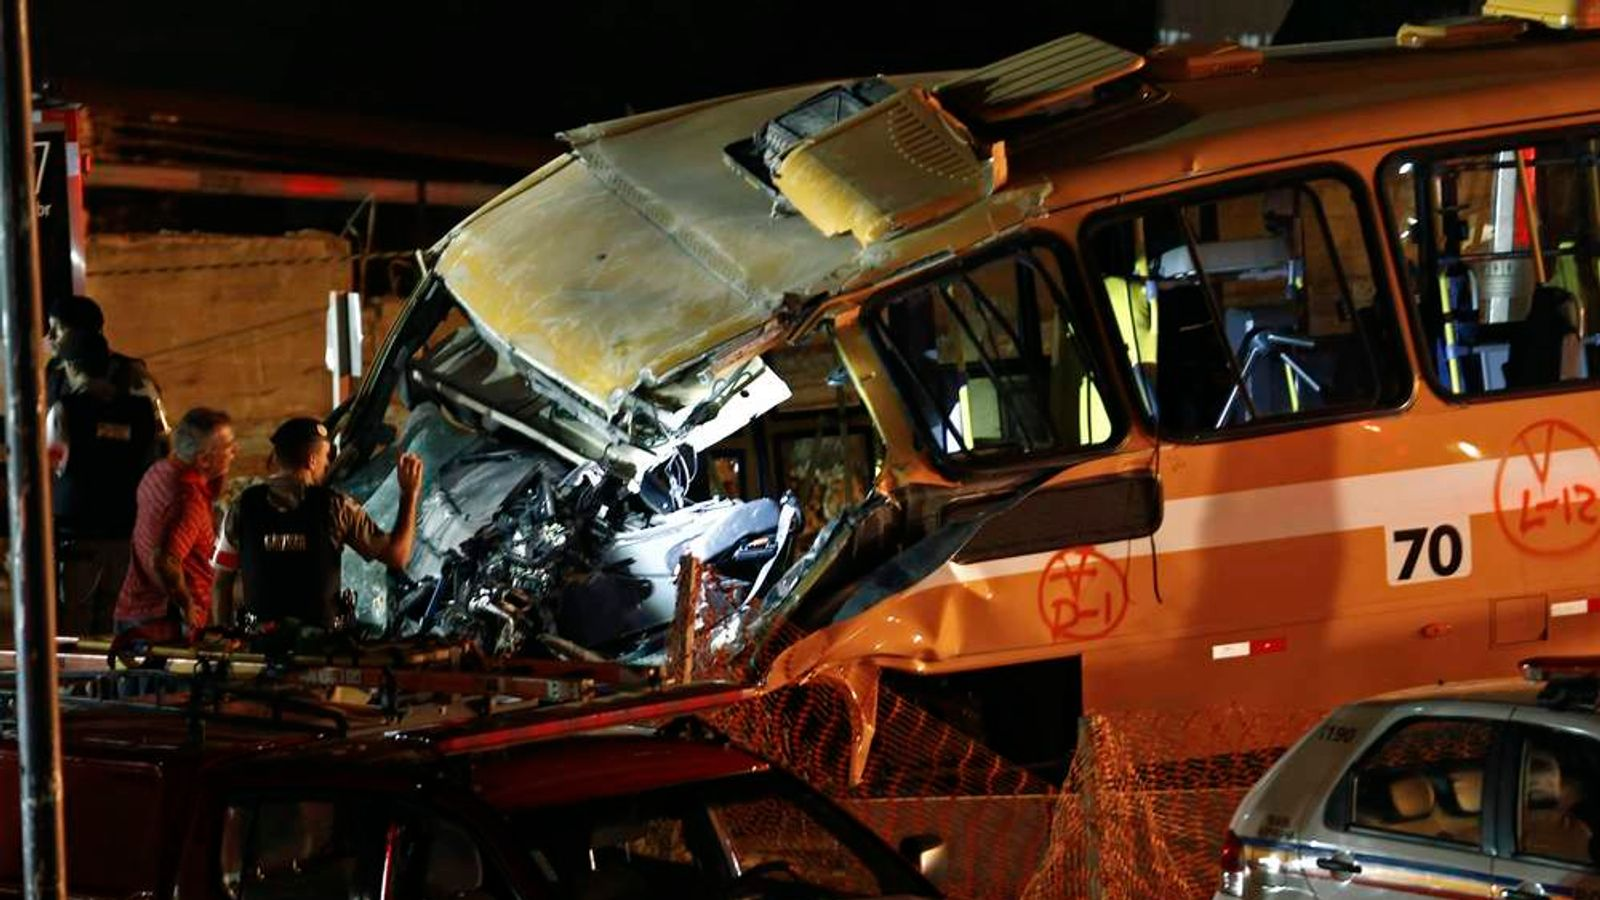 Police inspect a bus trapped underneath a bridge that collapsed while under construction in Belo Horizonte.